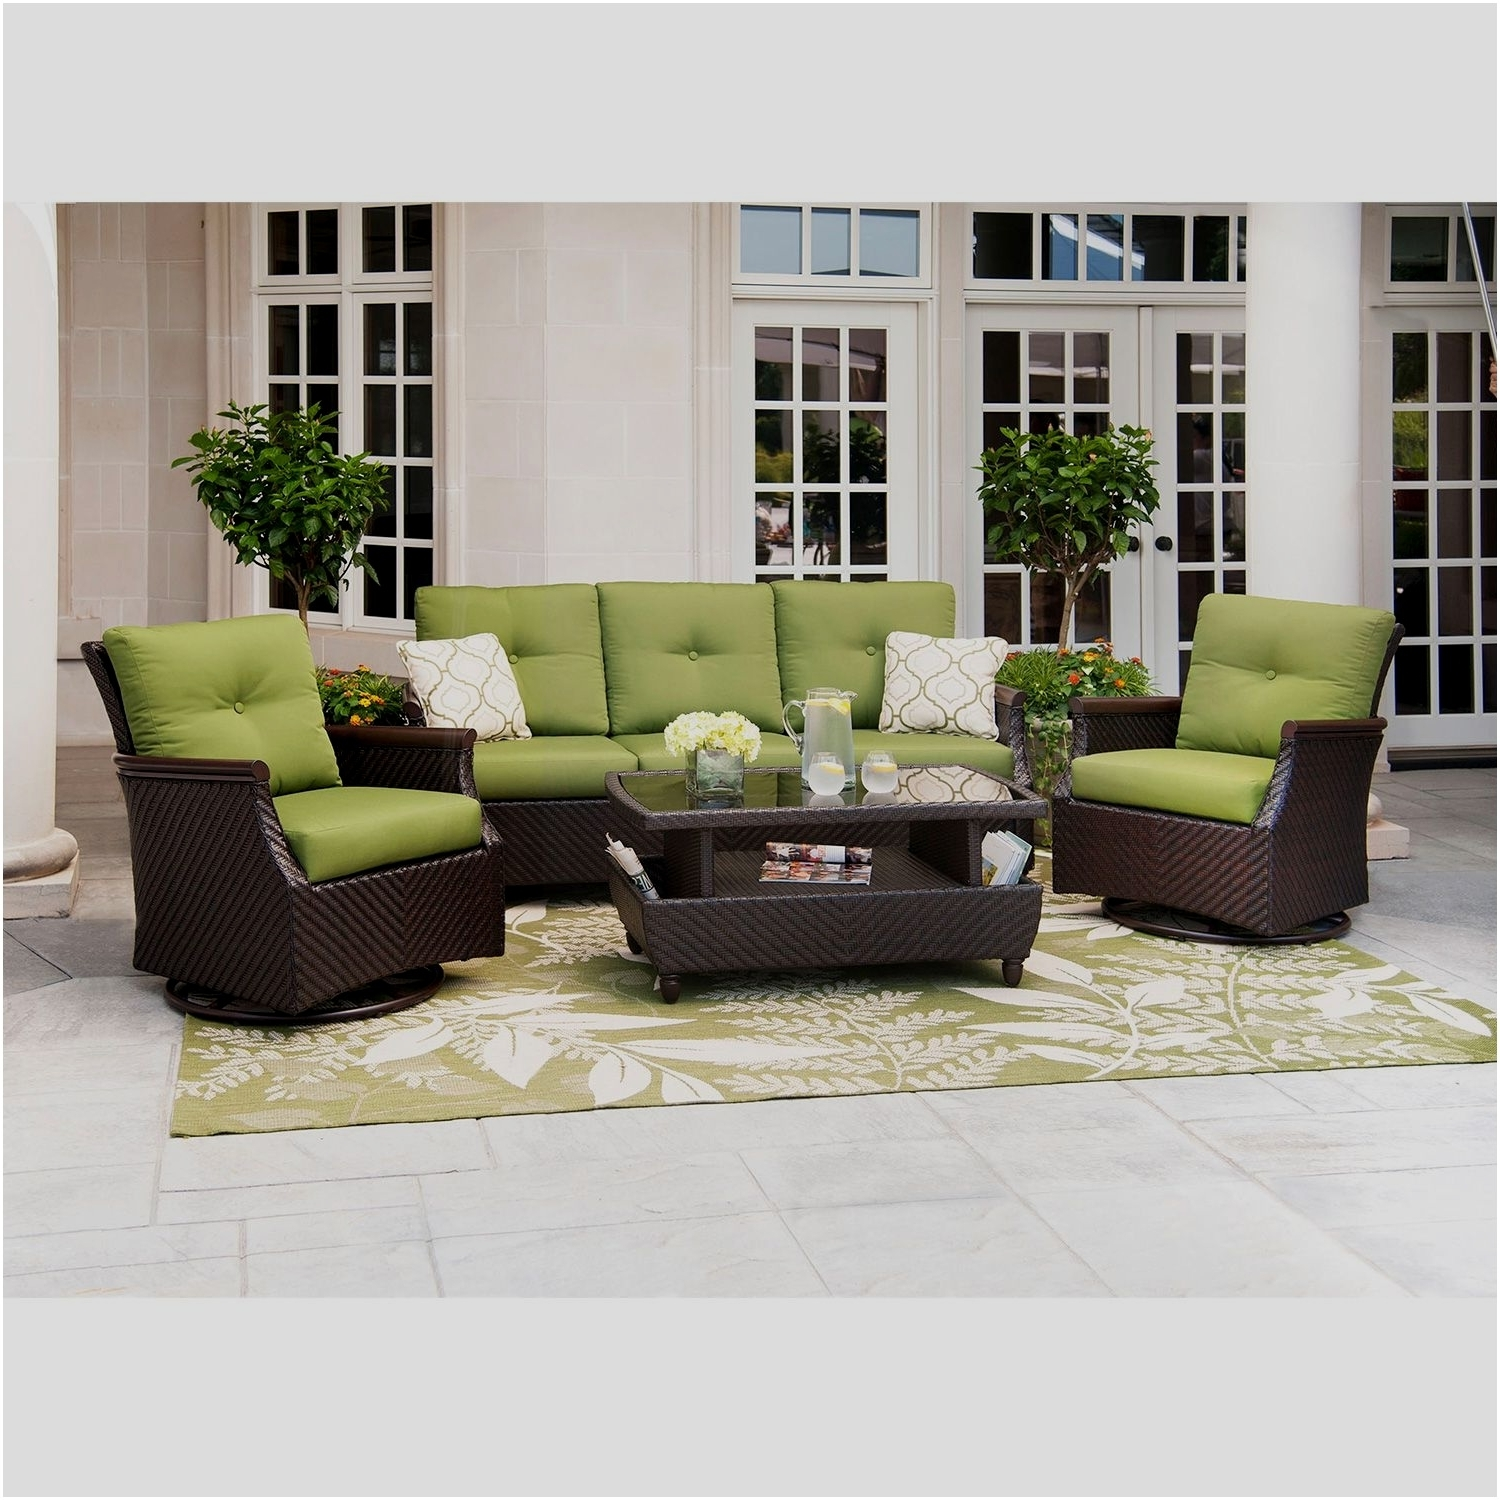 Photos Of Patio Conversation Sets For Small Spaces Showing 17 Of 20